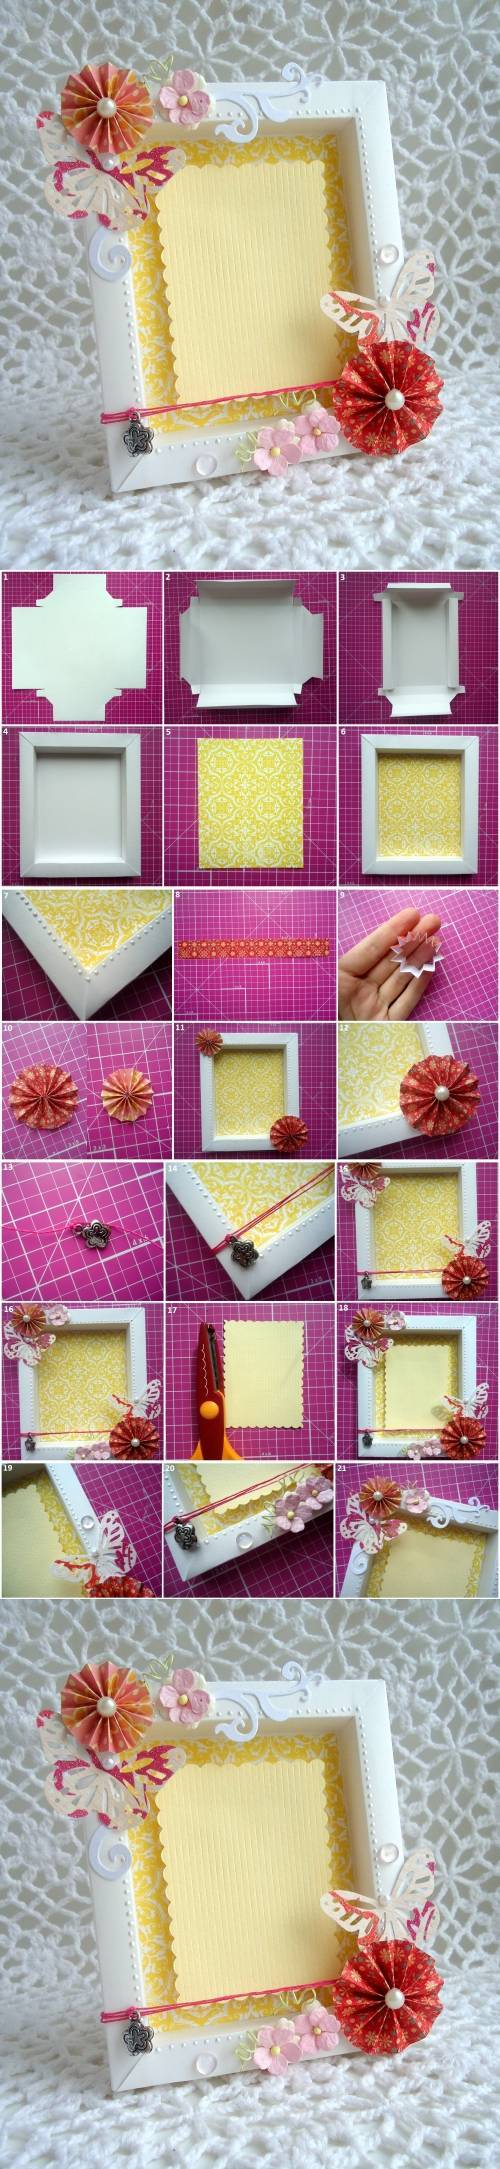 Diy cute cardboard picture frame for Cool picture frame designs